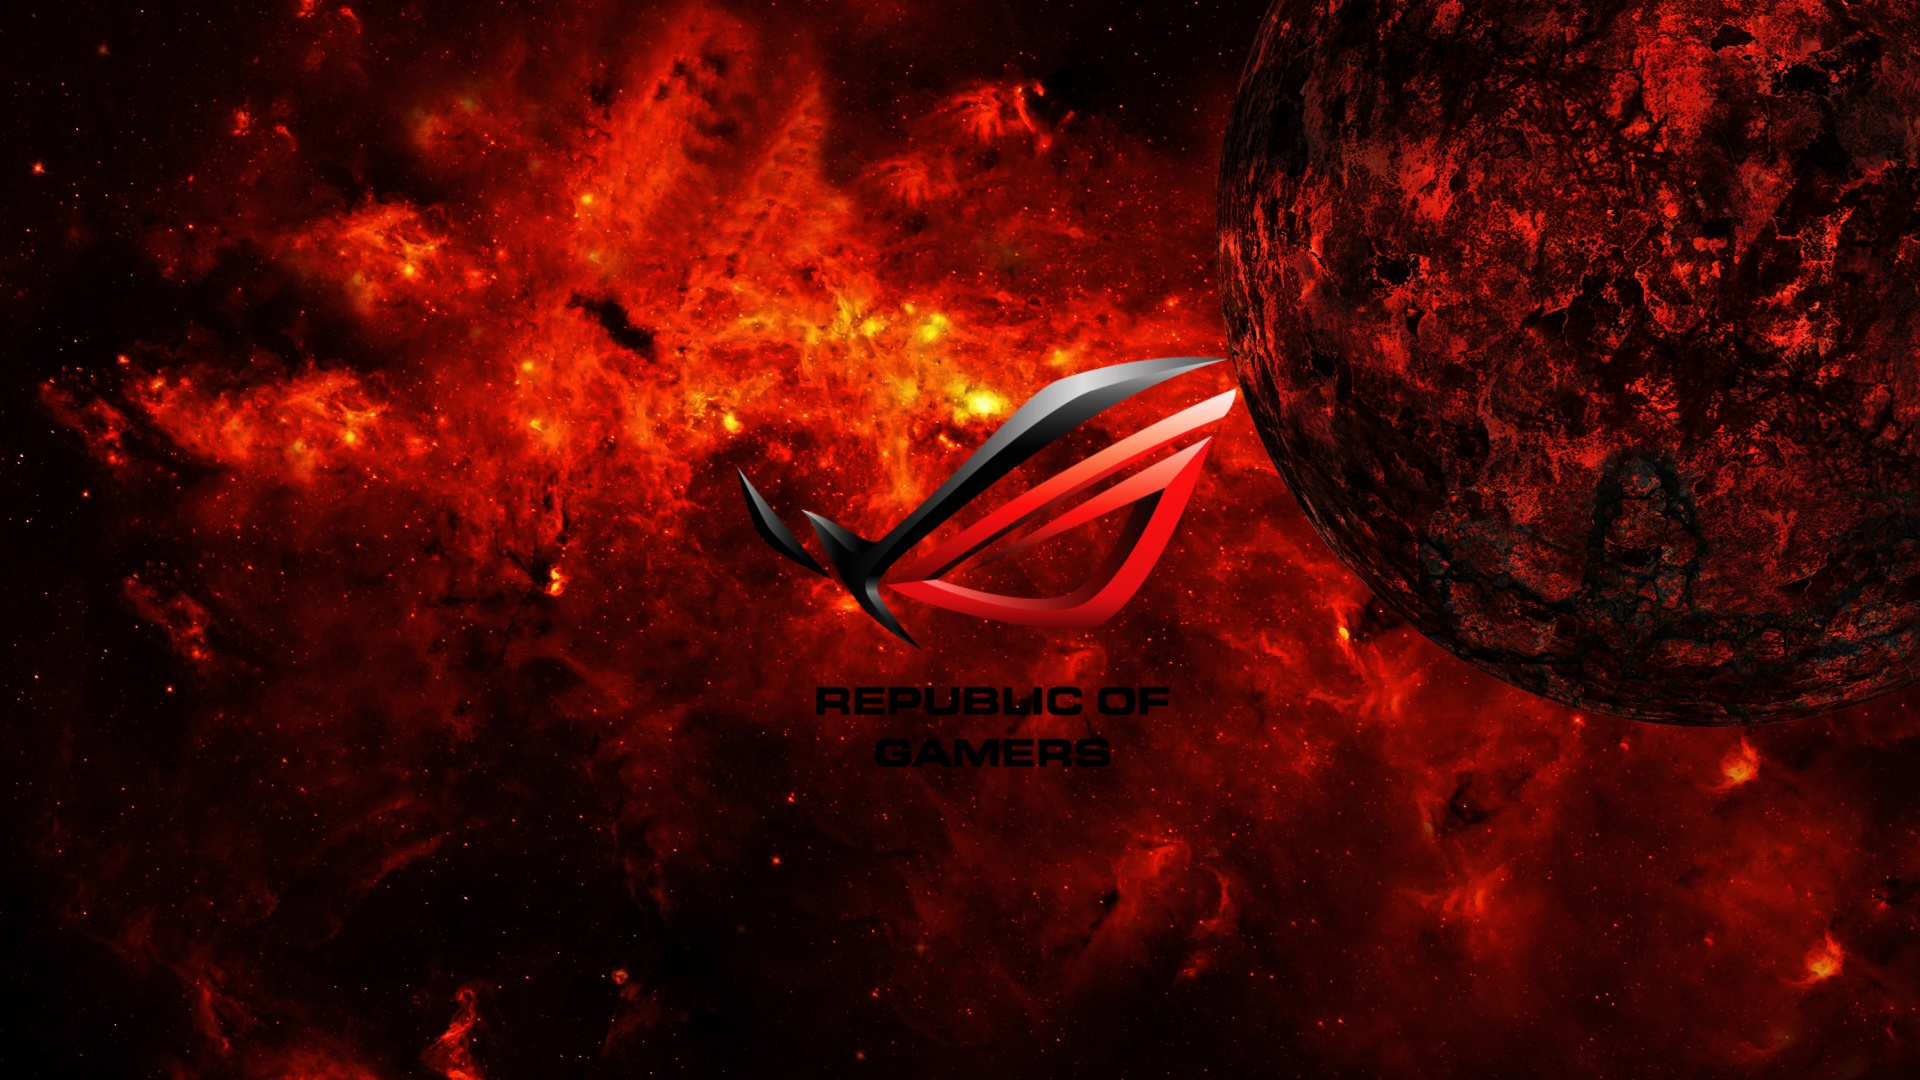 Asus Republic Of Gamers  1920 x 1080  Download  Close